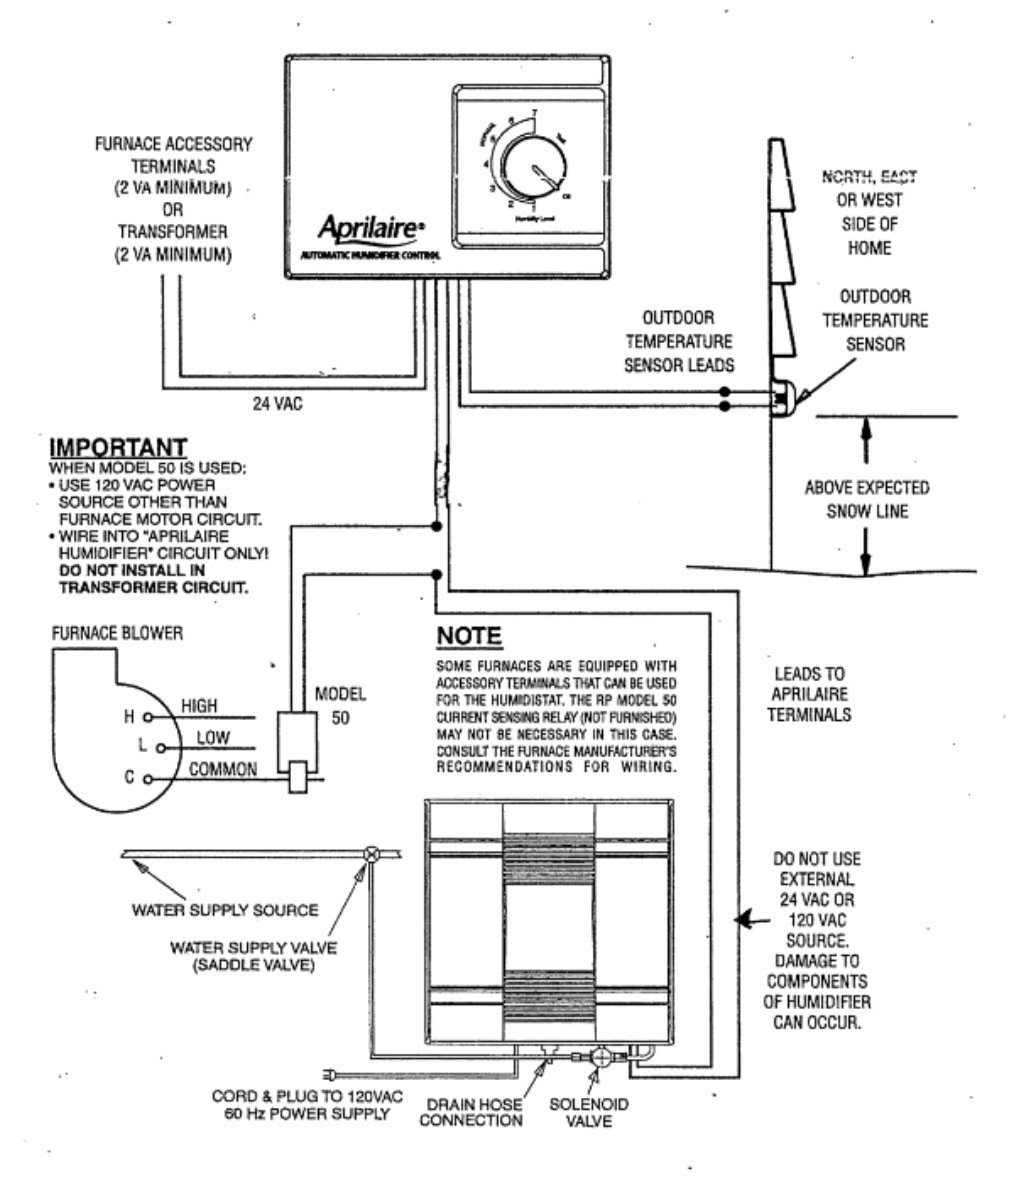 honeywell humidifier wiring diagram Download-Wiring Diagram Sheets Detail Name honeywell humidifier wiring diagram – Honeywell Humidifier 5-p